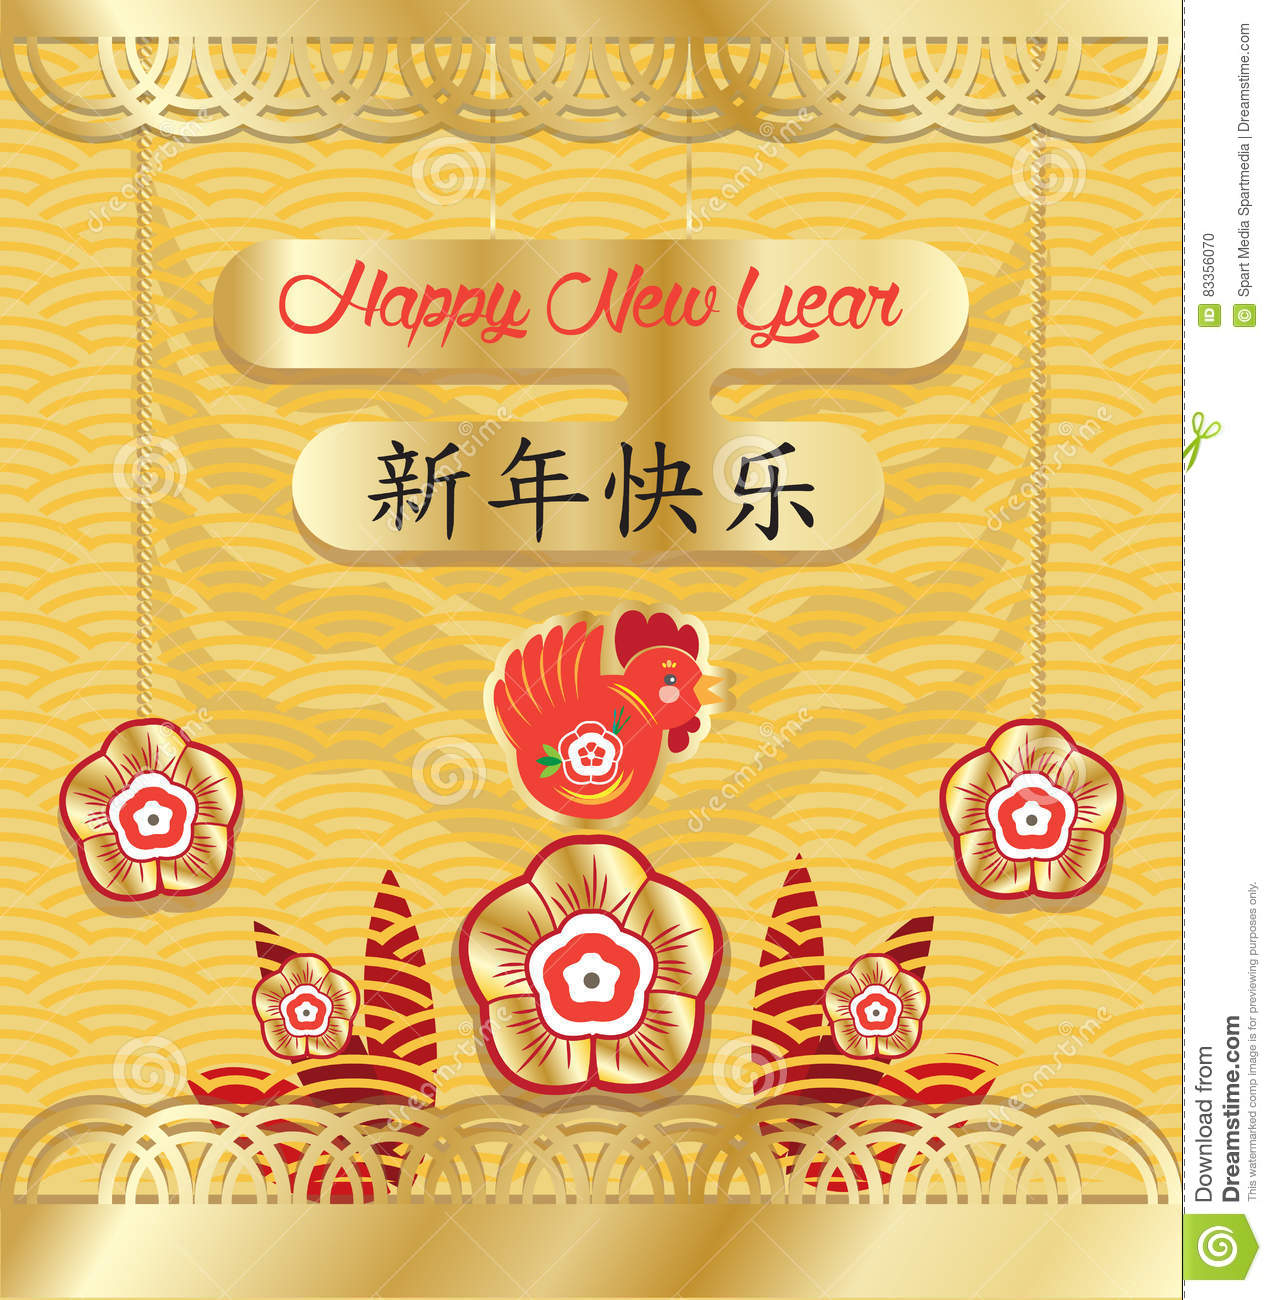 Happy chinese new year 2017 of rooster card background with graphic